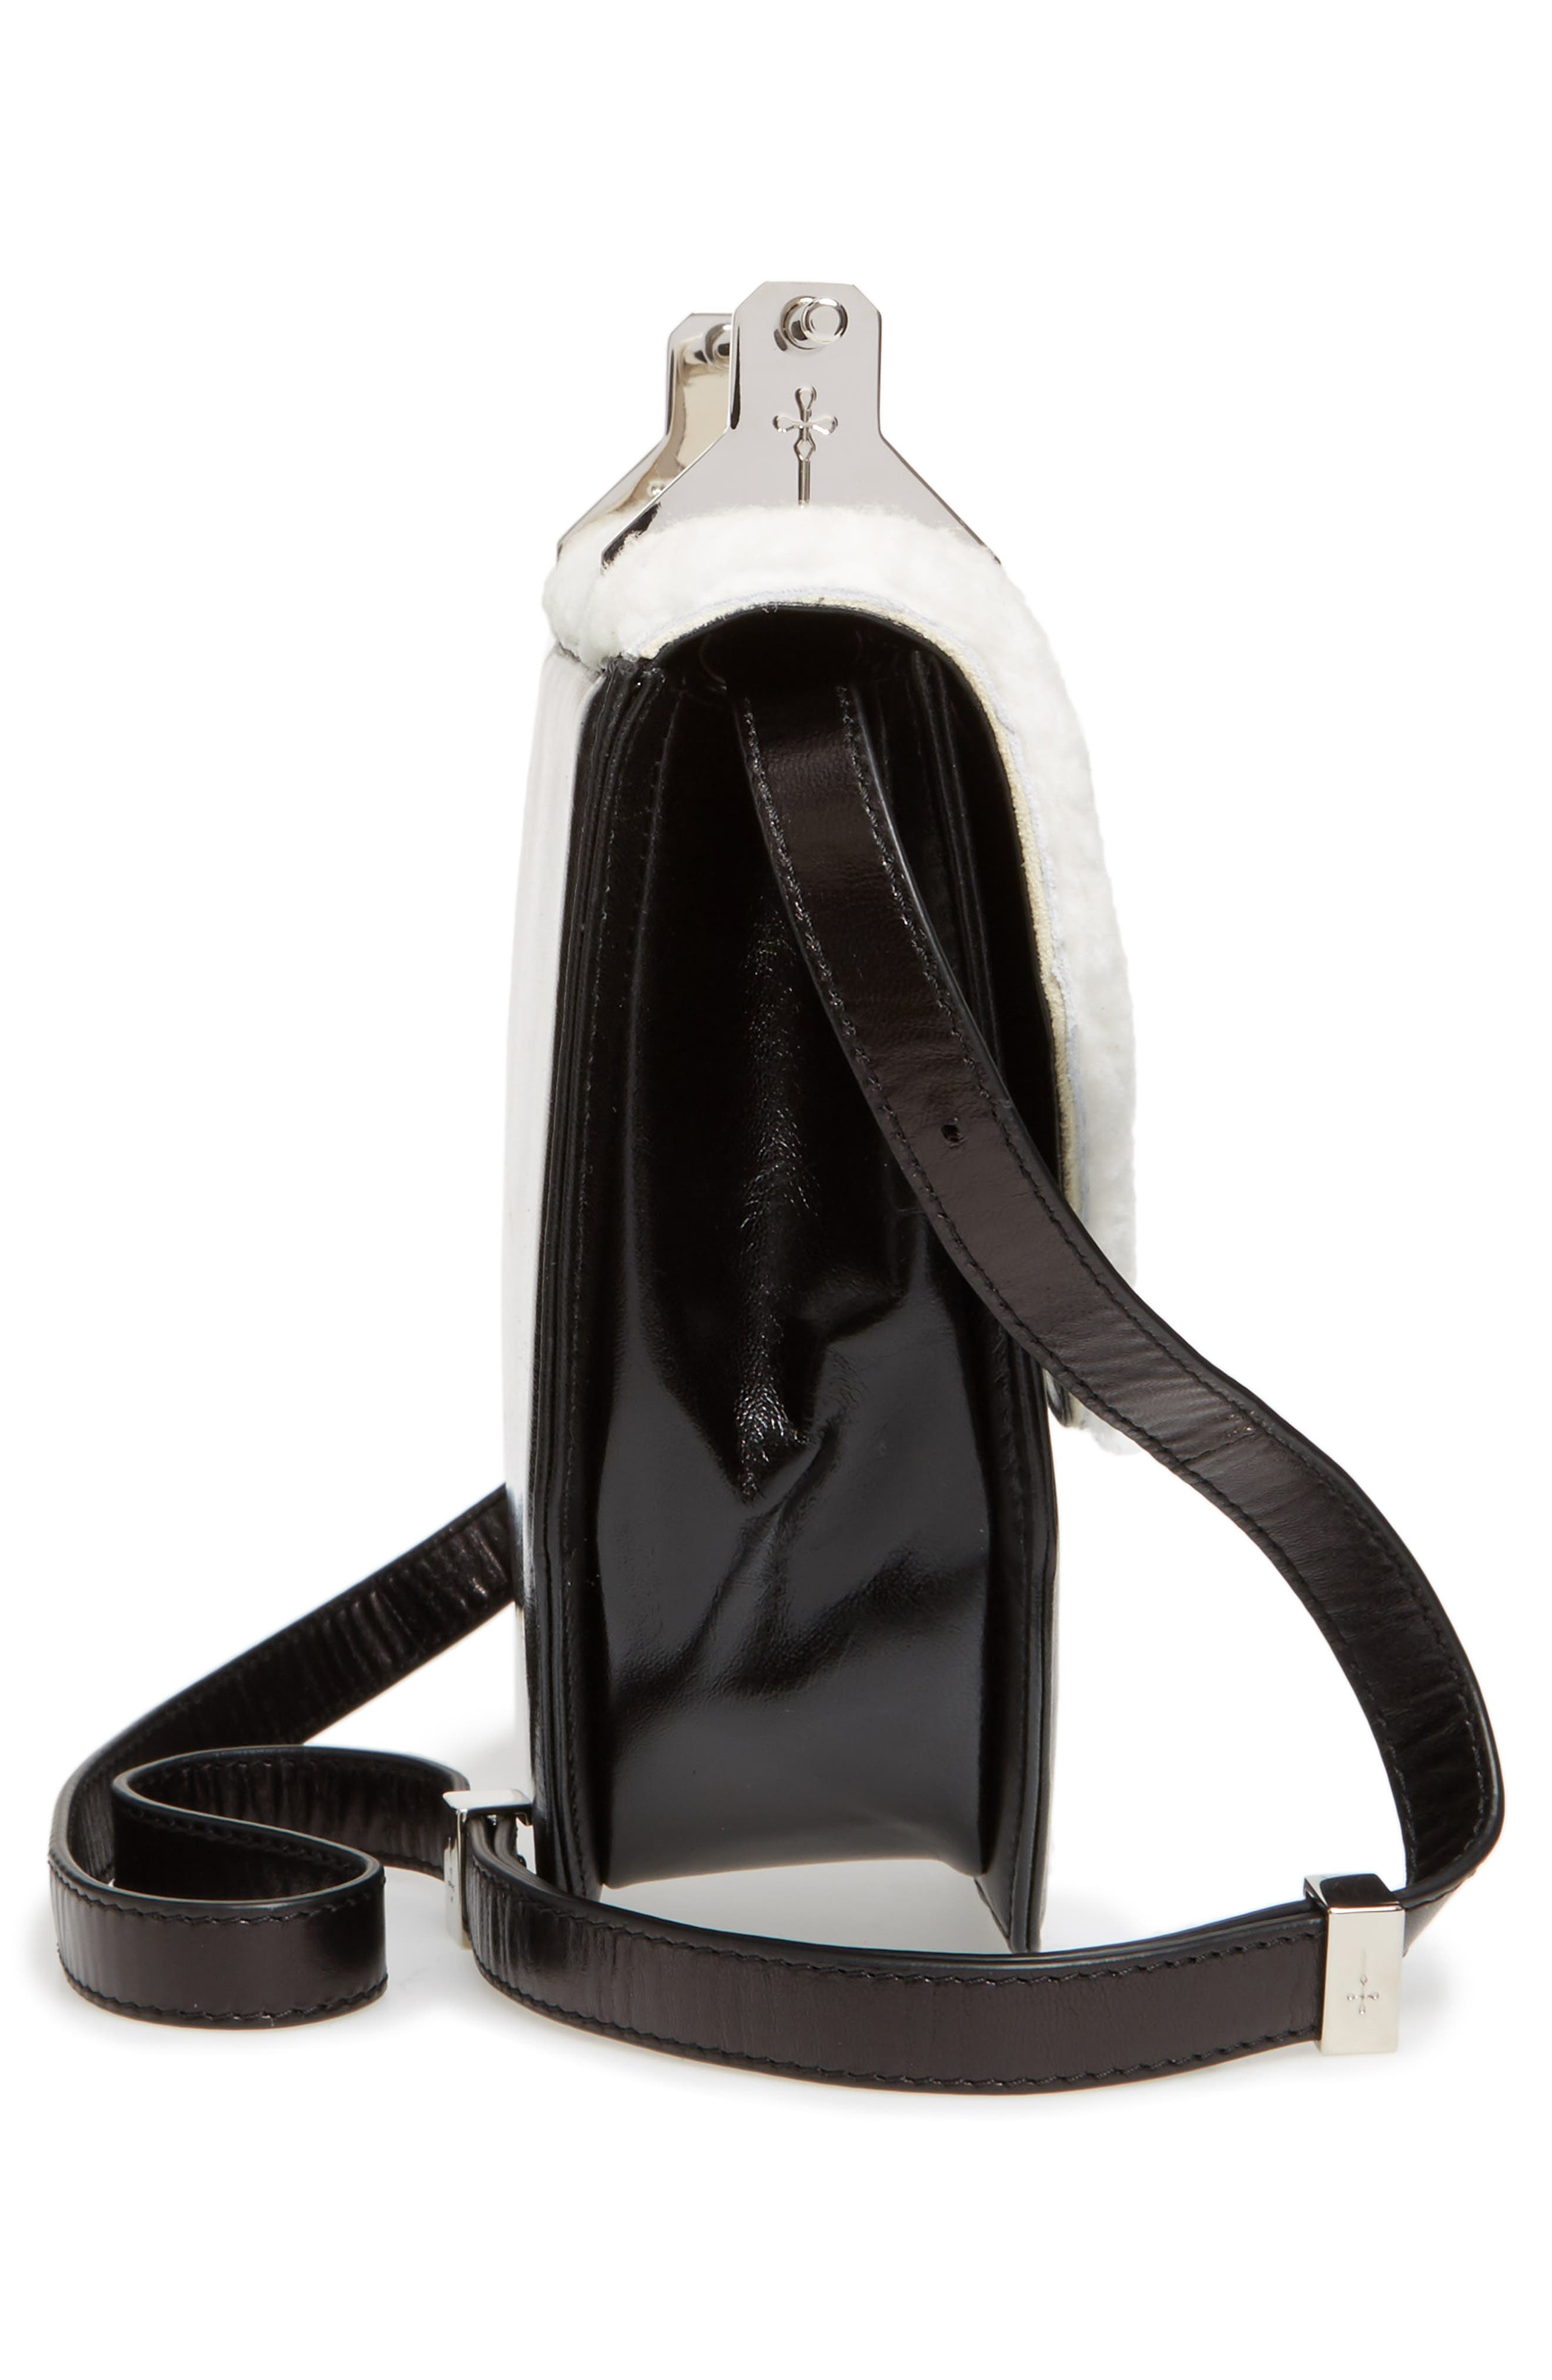 Amor Fati Leather & Genuine Shearling Shoulder Bag,                             Alternate thumbnail 4, color,                             Black/ White/ Silver